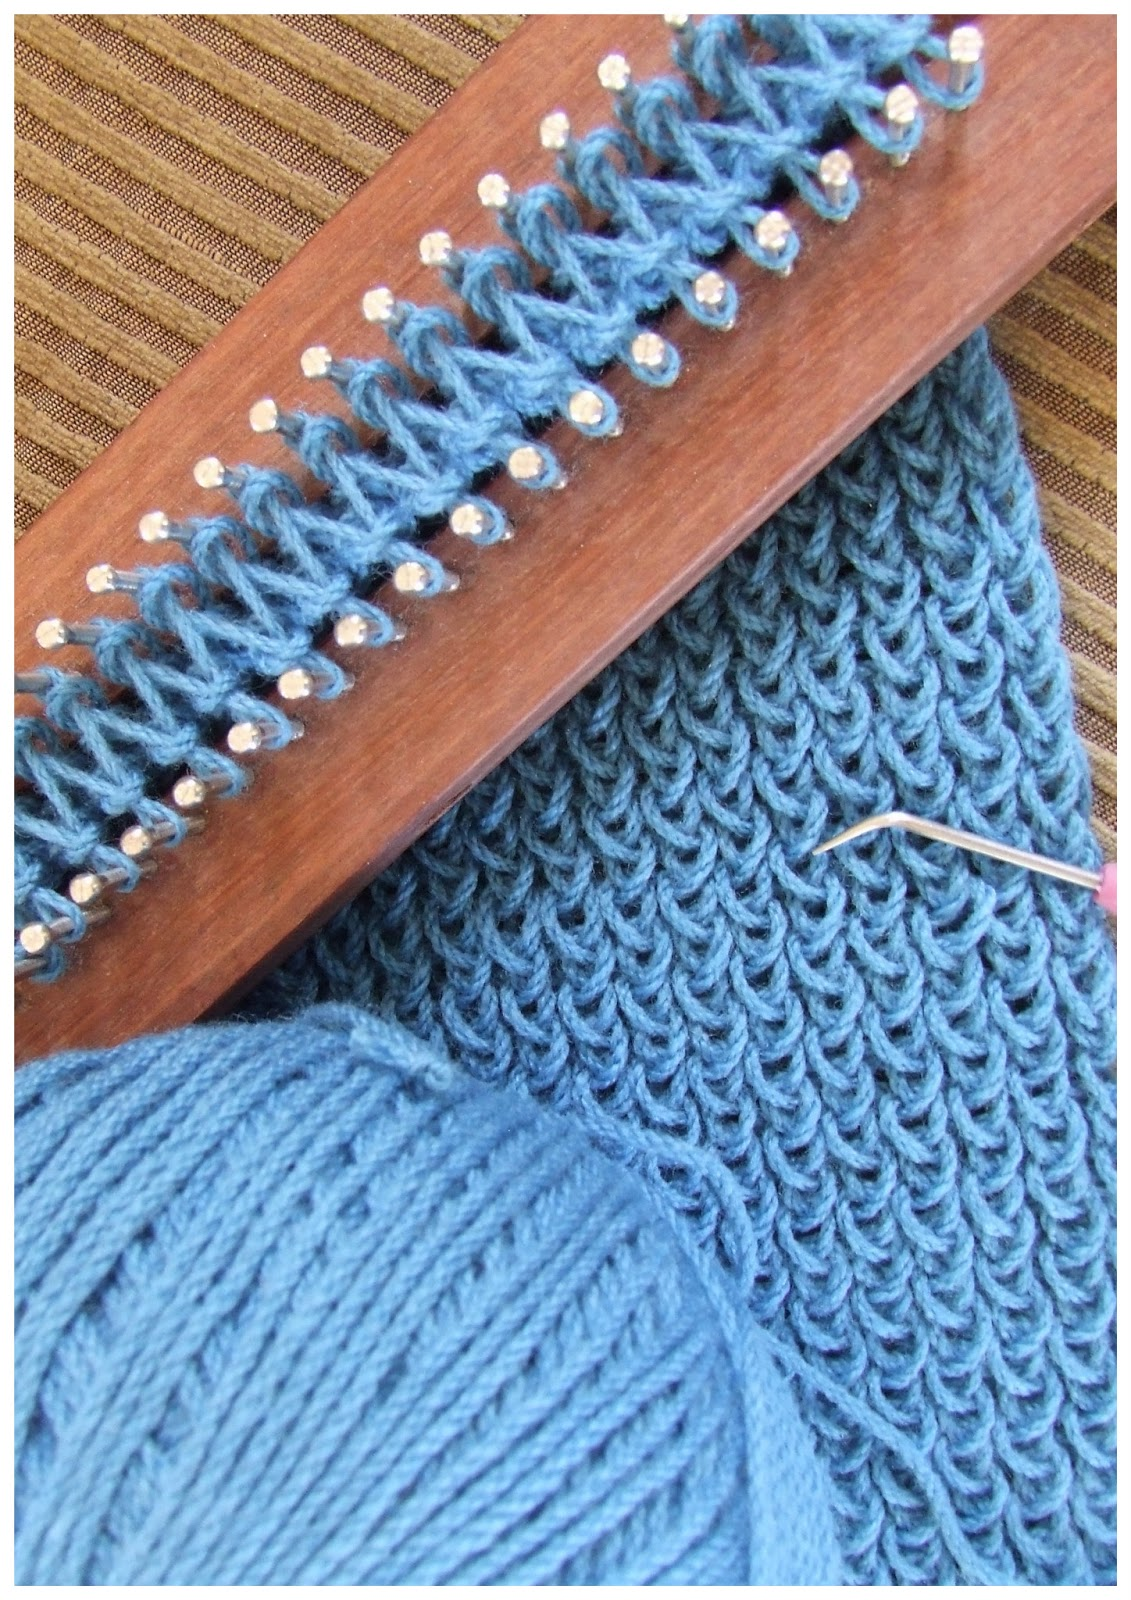 Loom Knitting Stitches Pictures : FitzBirch Crafts: Loom Knitting